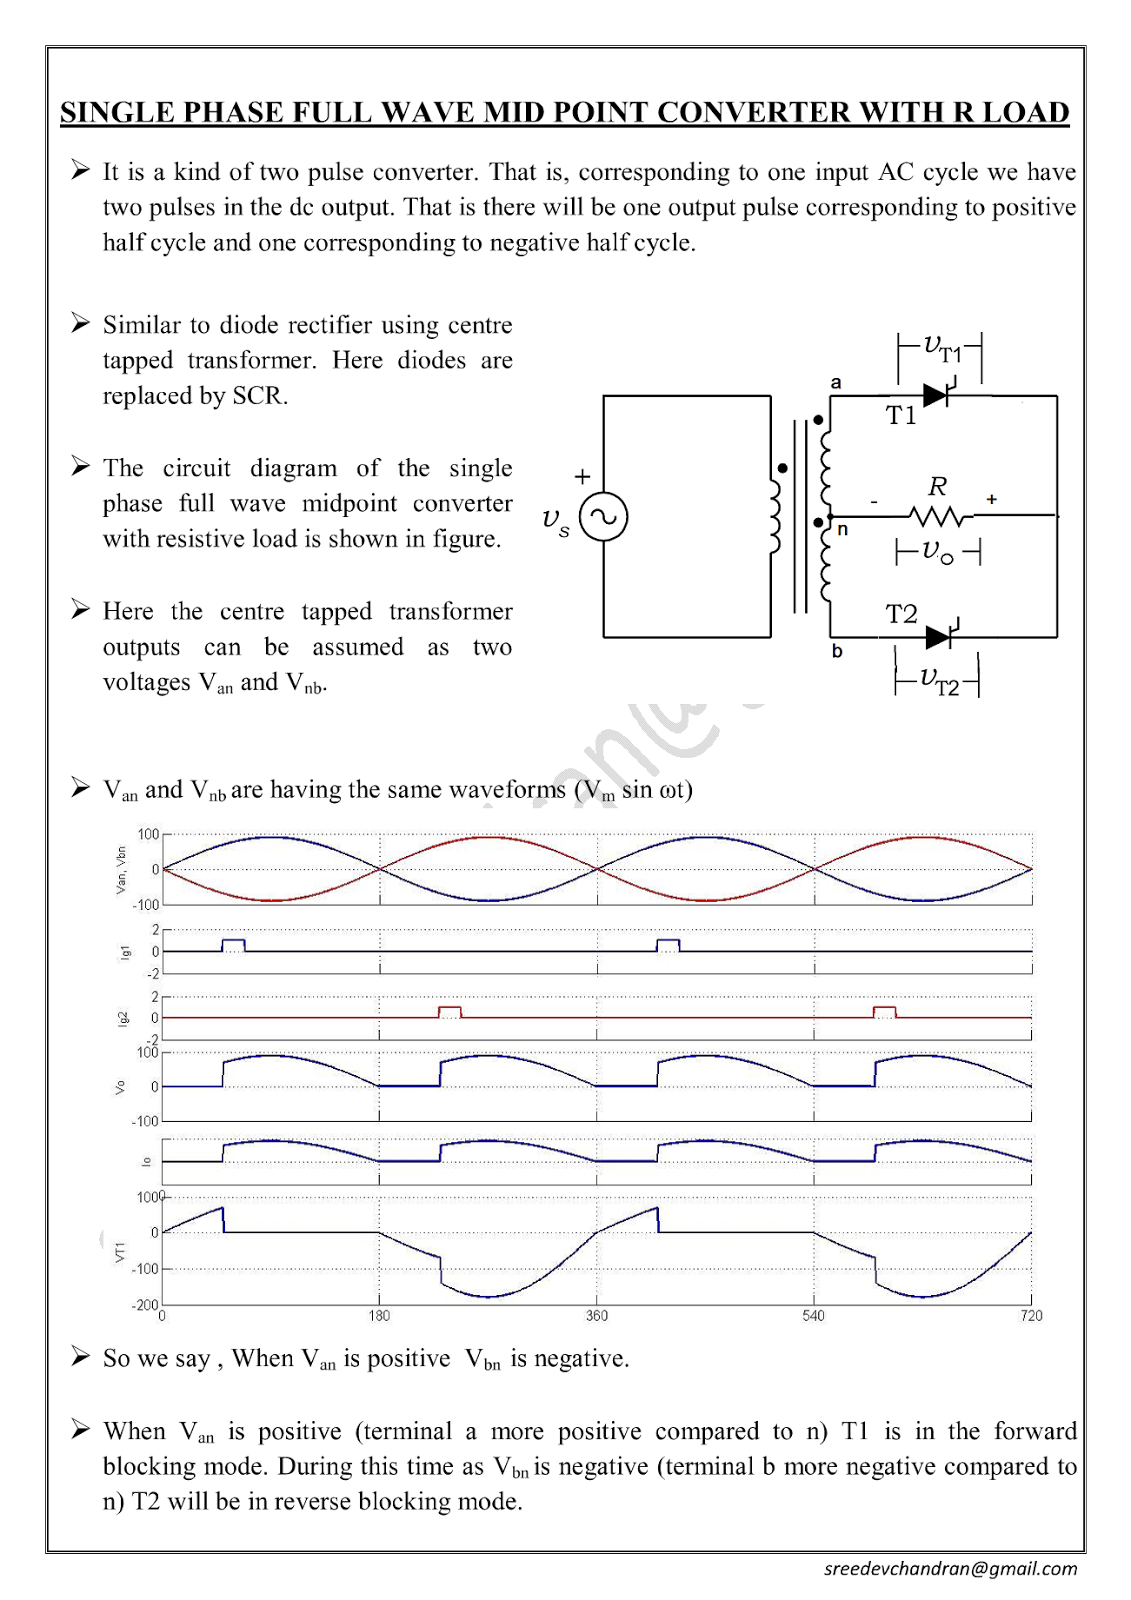 Power Electronics Notes Single Phase Midpoint Converter With R Rl Fullwave Bridge Rectifier Circuit Click Here To Down Load Full Wave Loads